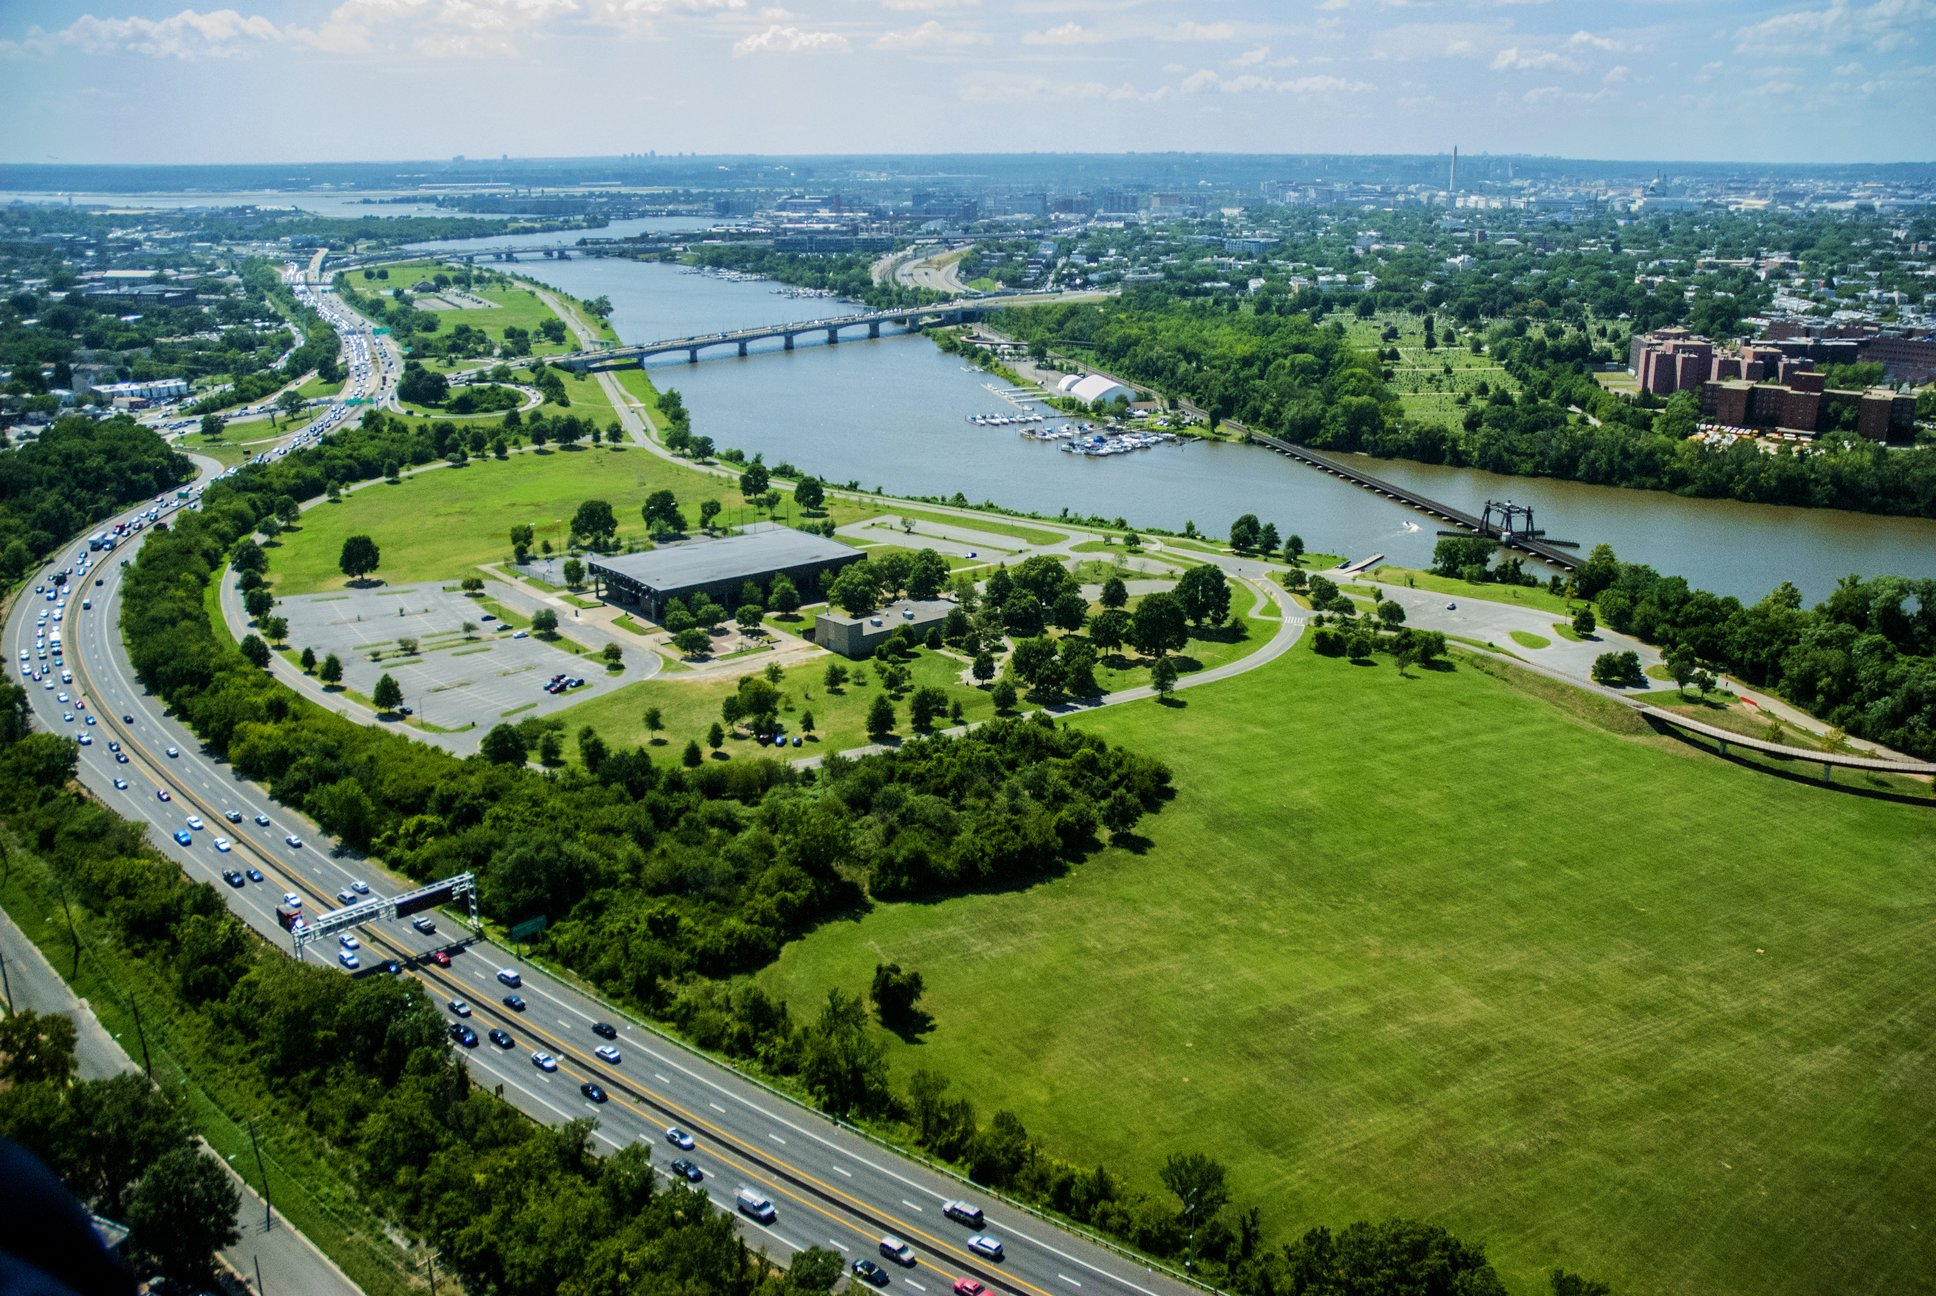 an aerial view of Anacostia Park in Washington D.C.